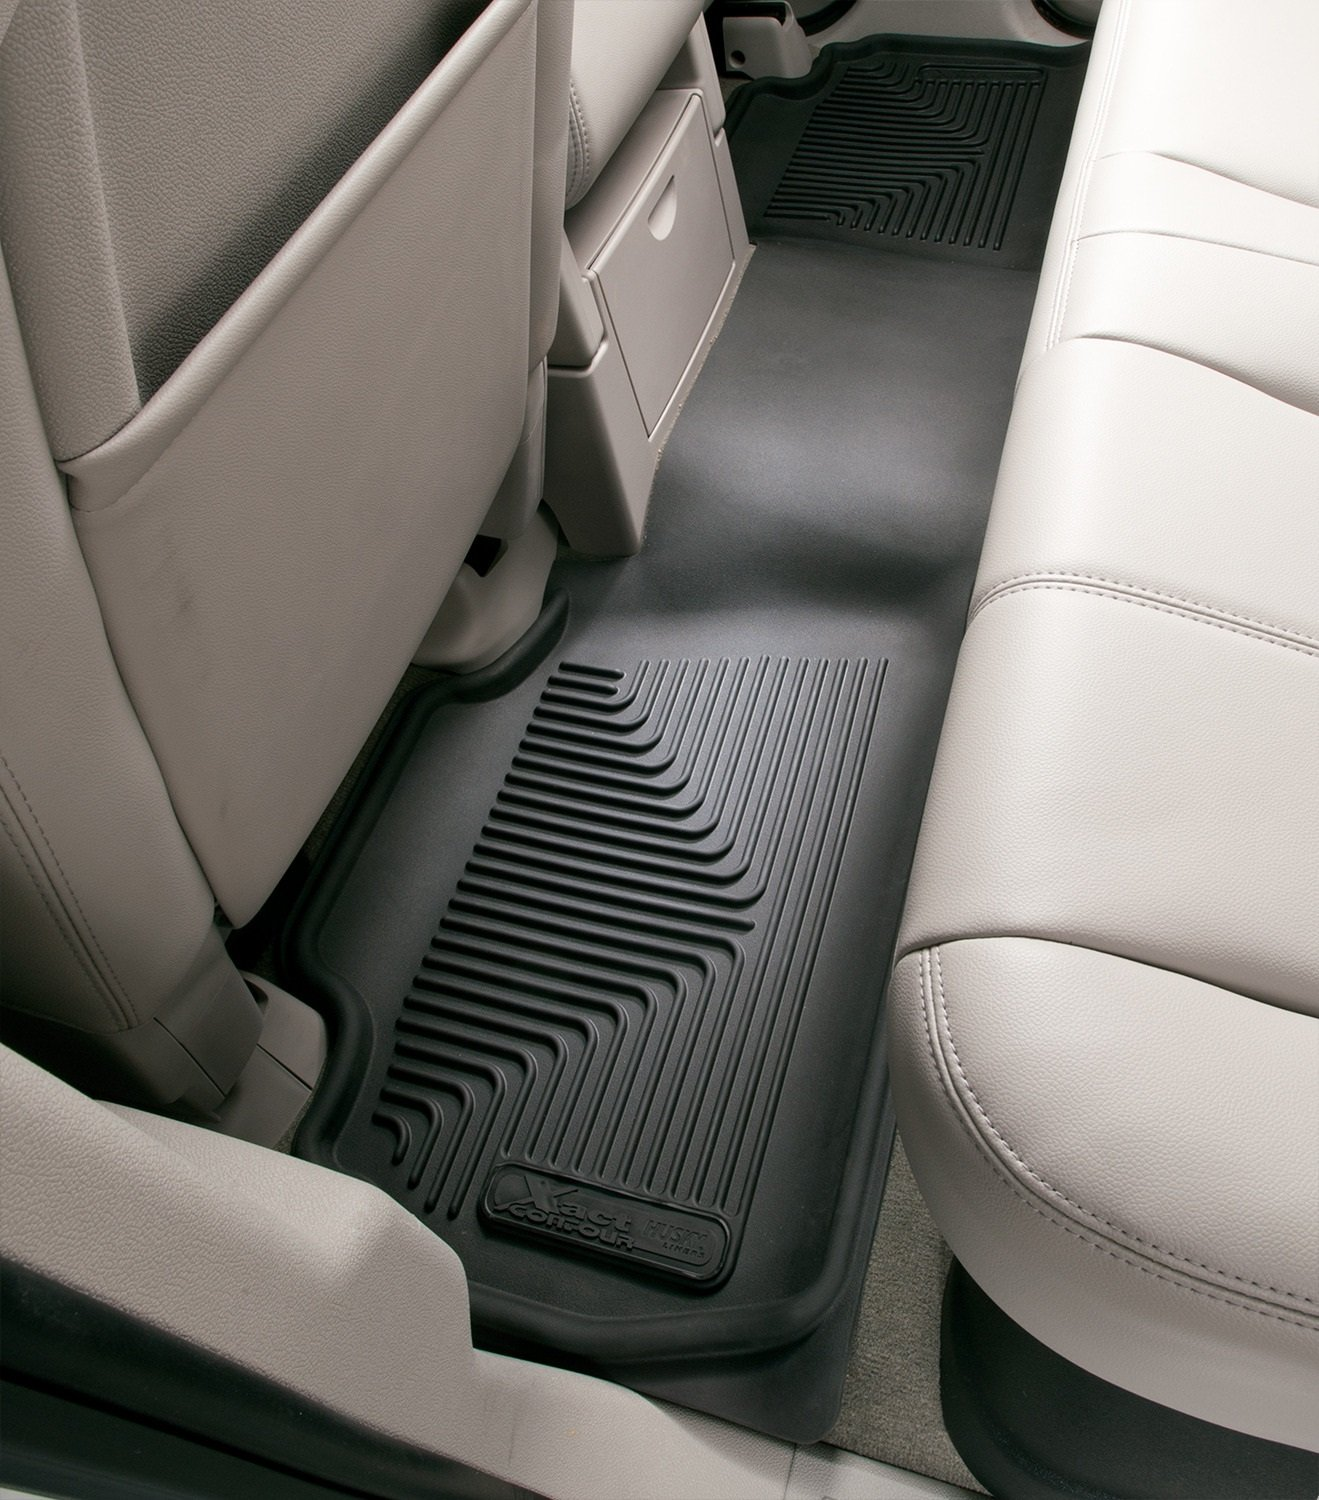 weathertech of x etrailer youtube floor a mats com toyota rear on tundra the review photo